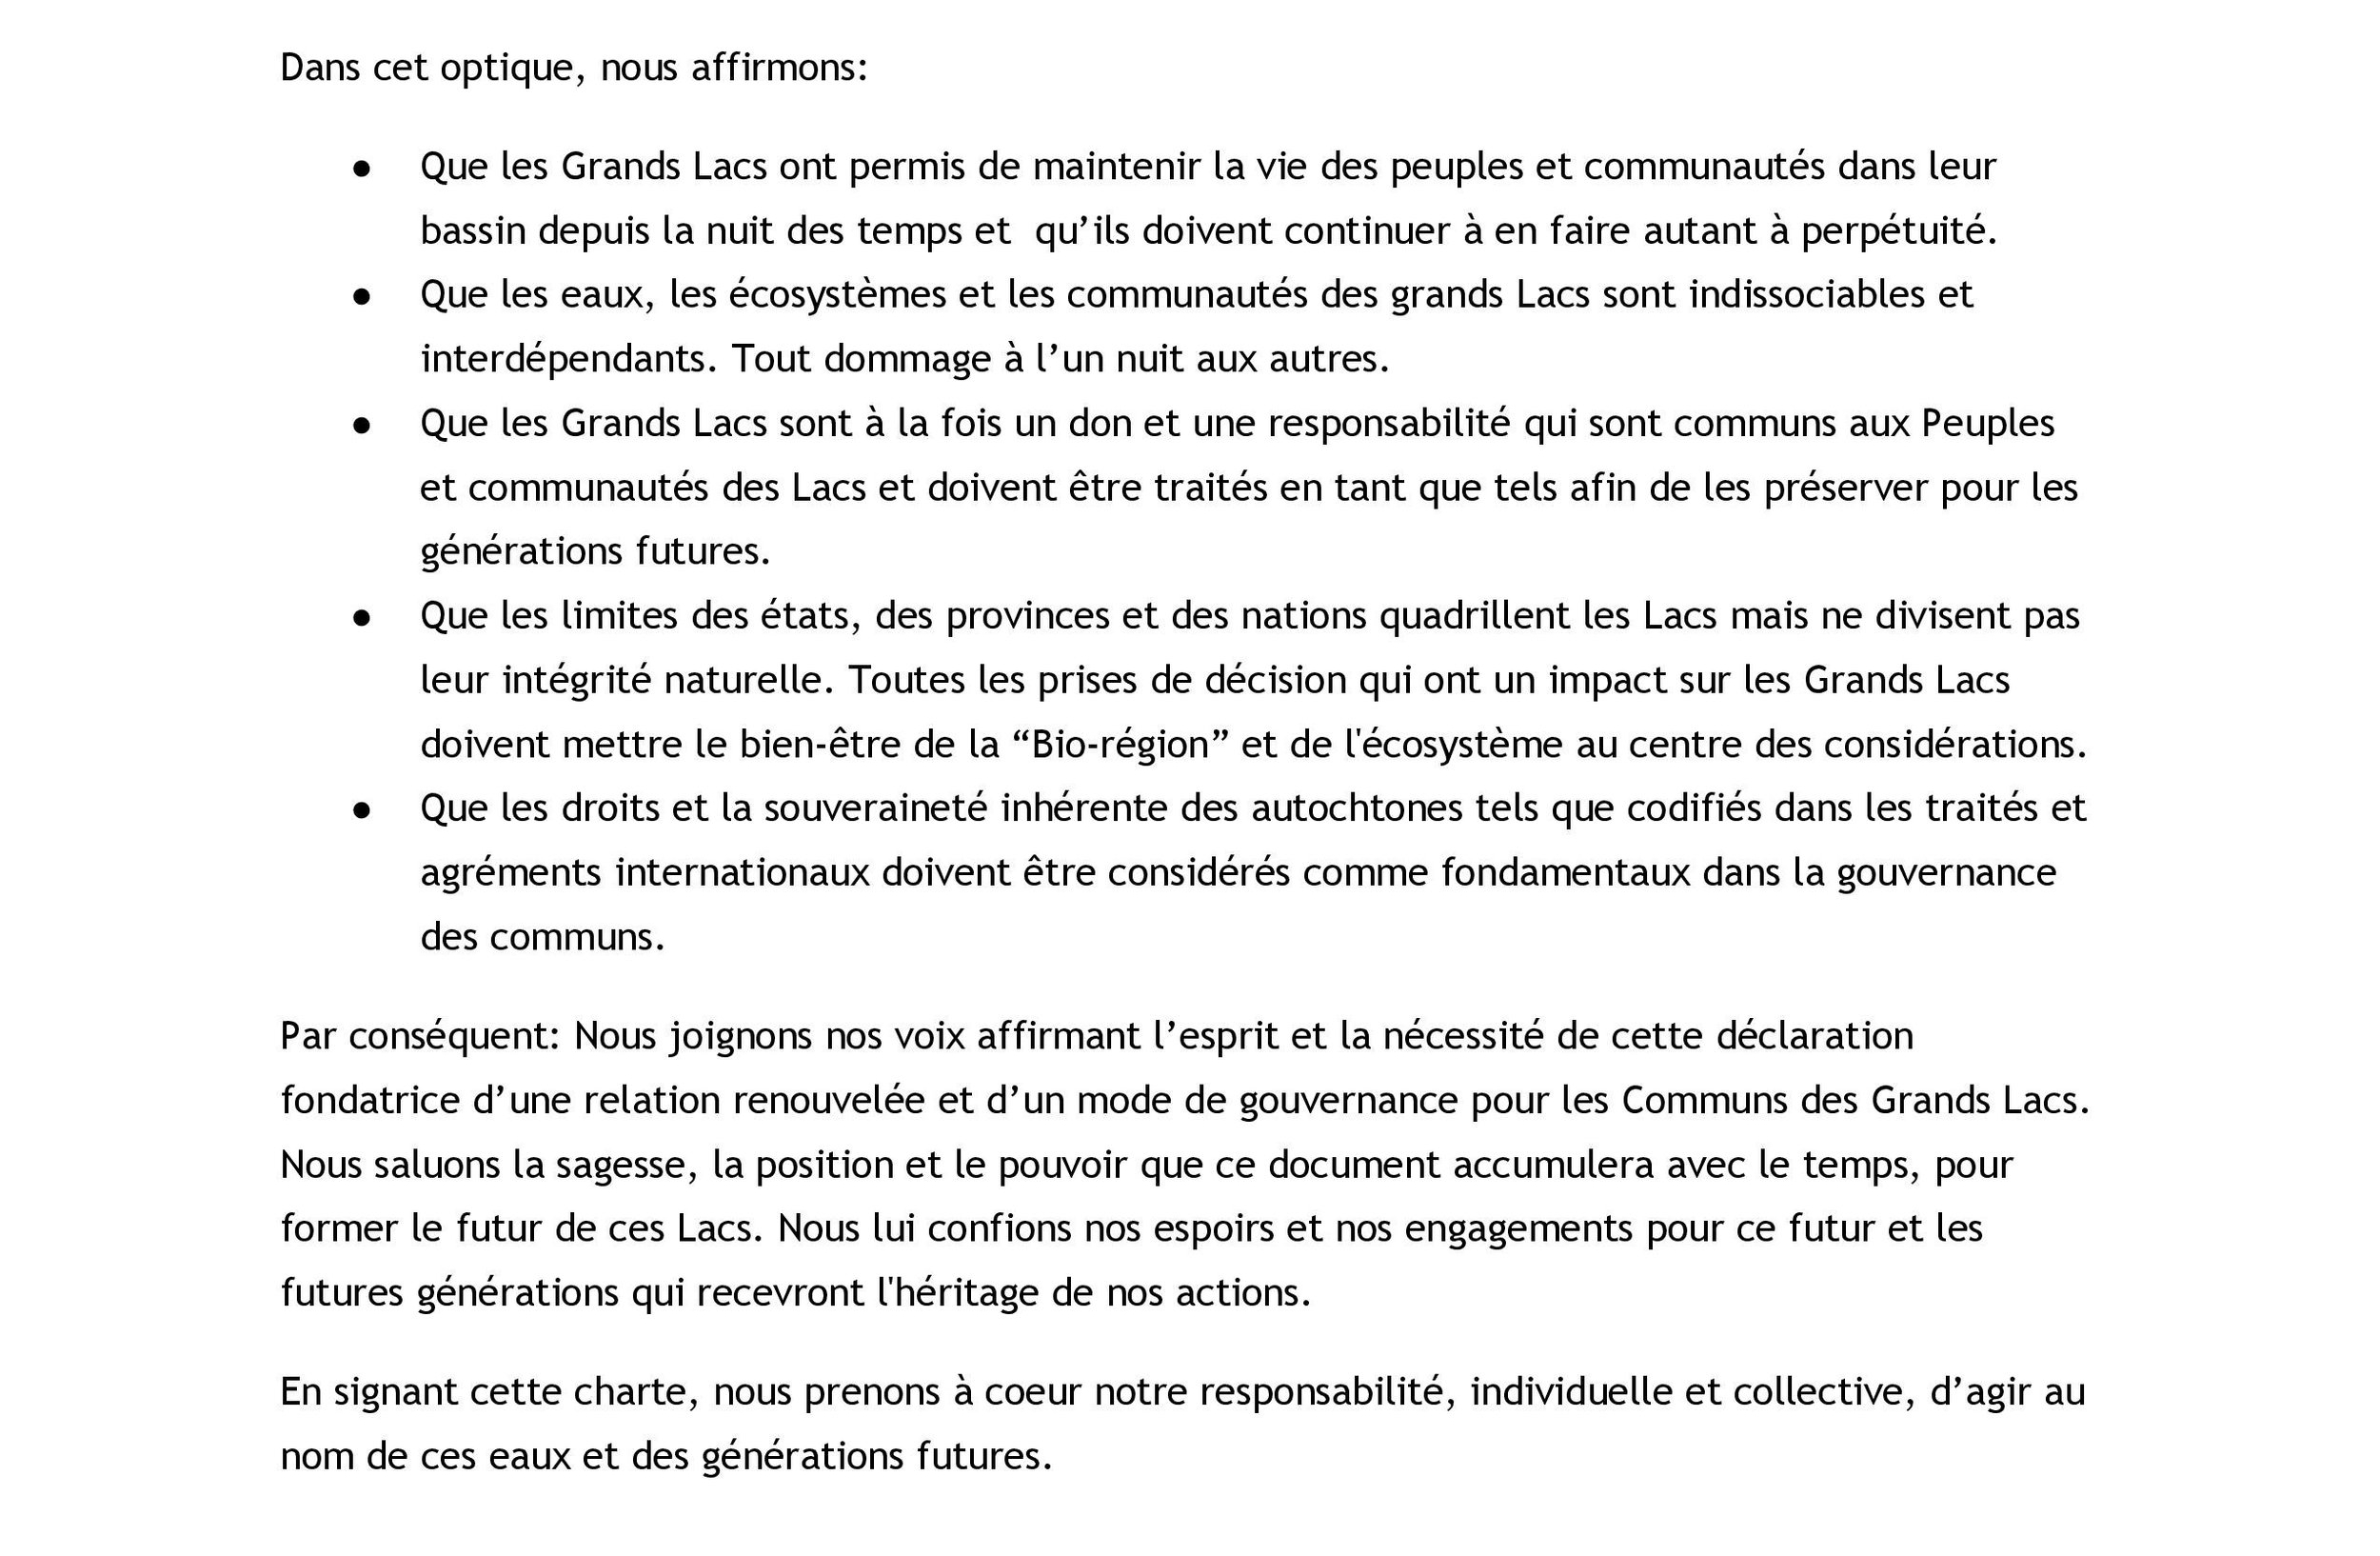 FrenchCharter(1)(2)-page-002.jpg